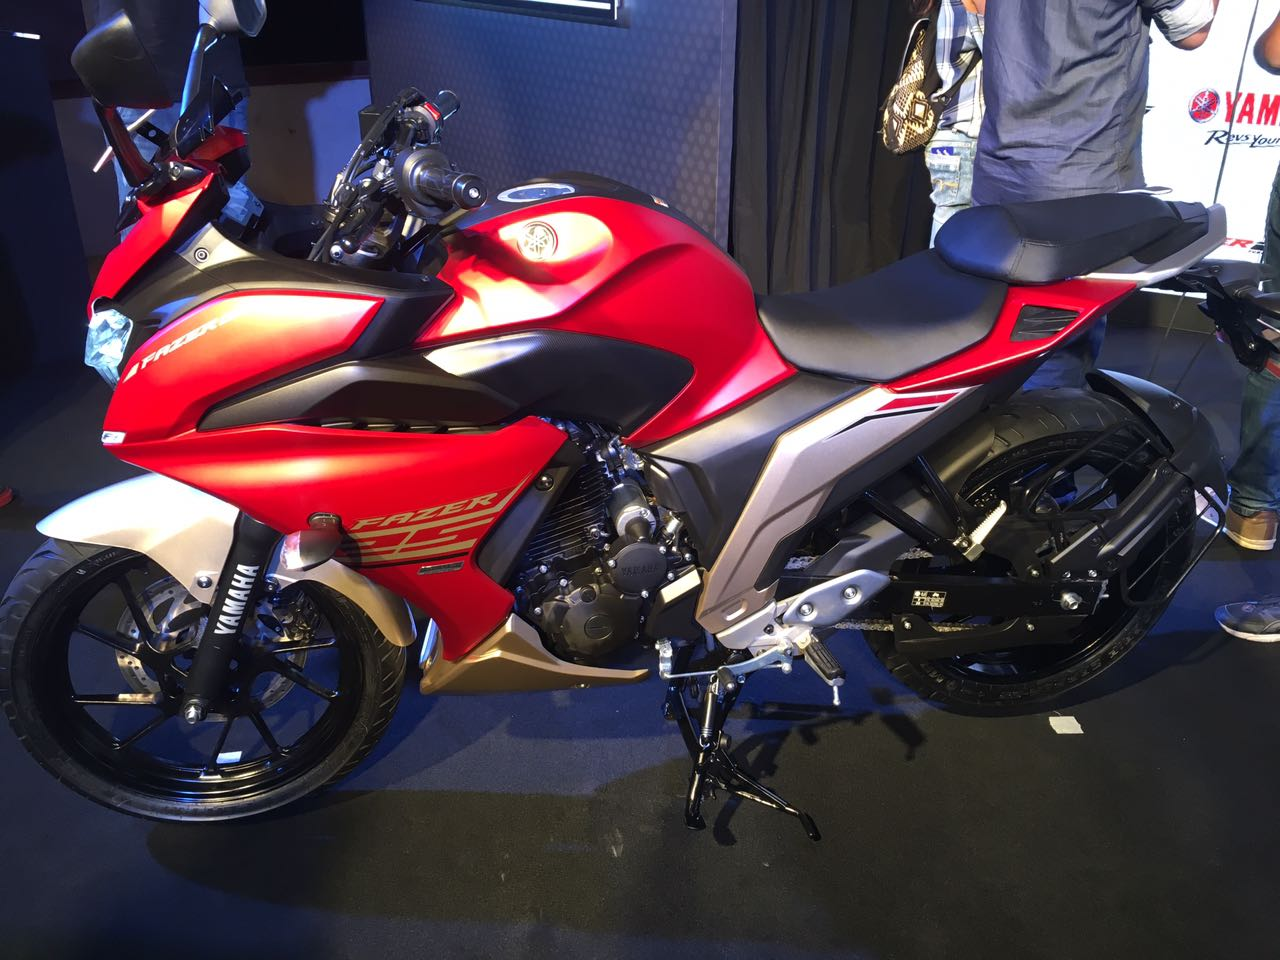 Yamaha Electric Motorcycle >> Yamaha launches Fazer 25 in India for INR 1.28 lakh ...